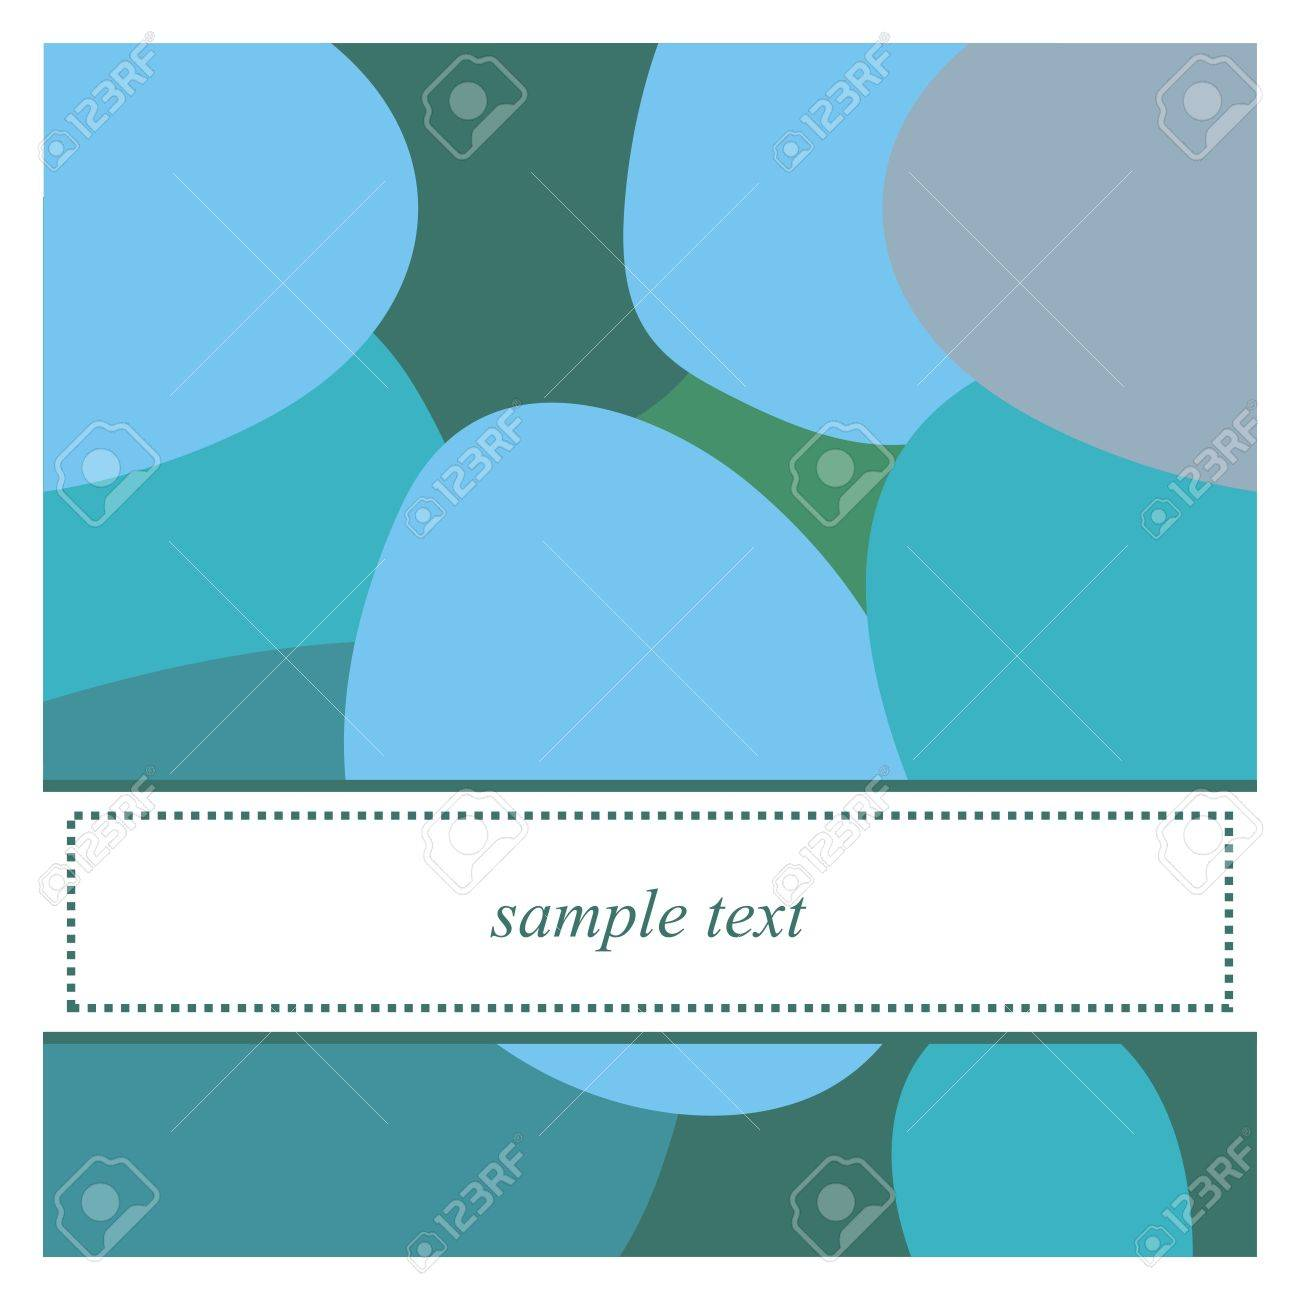 Sweet, blue, grey and green pop art card or invitation. Cute background with white space to put your own text message. Cocktail party, birthday, baby shower or other occasion Stock Vector - 18558122